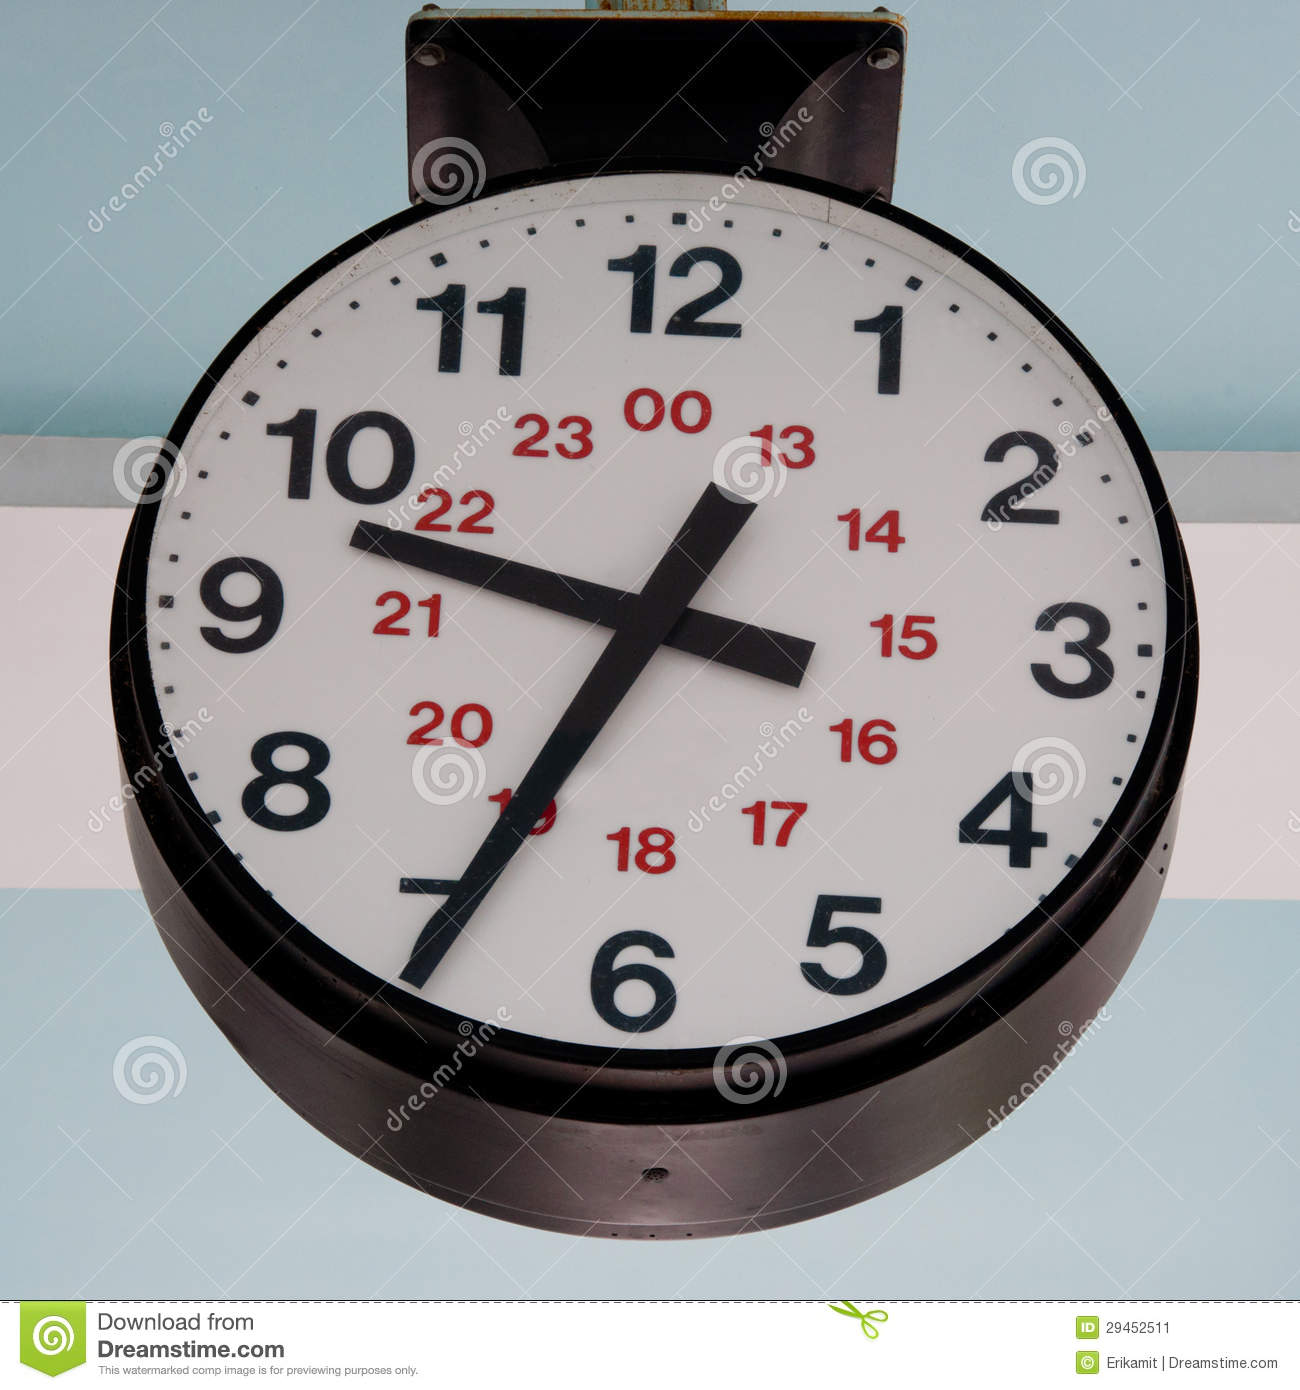 Large 24 Hour Clock Outdoors Stock Image